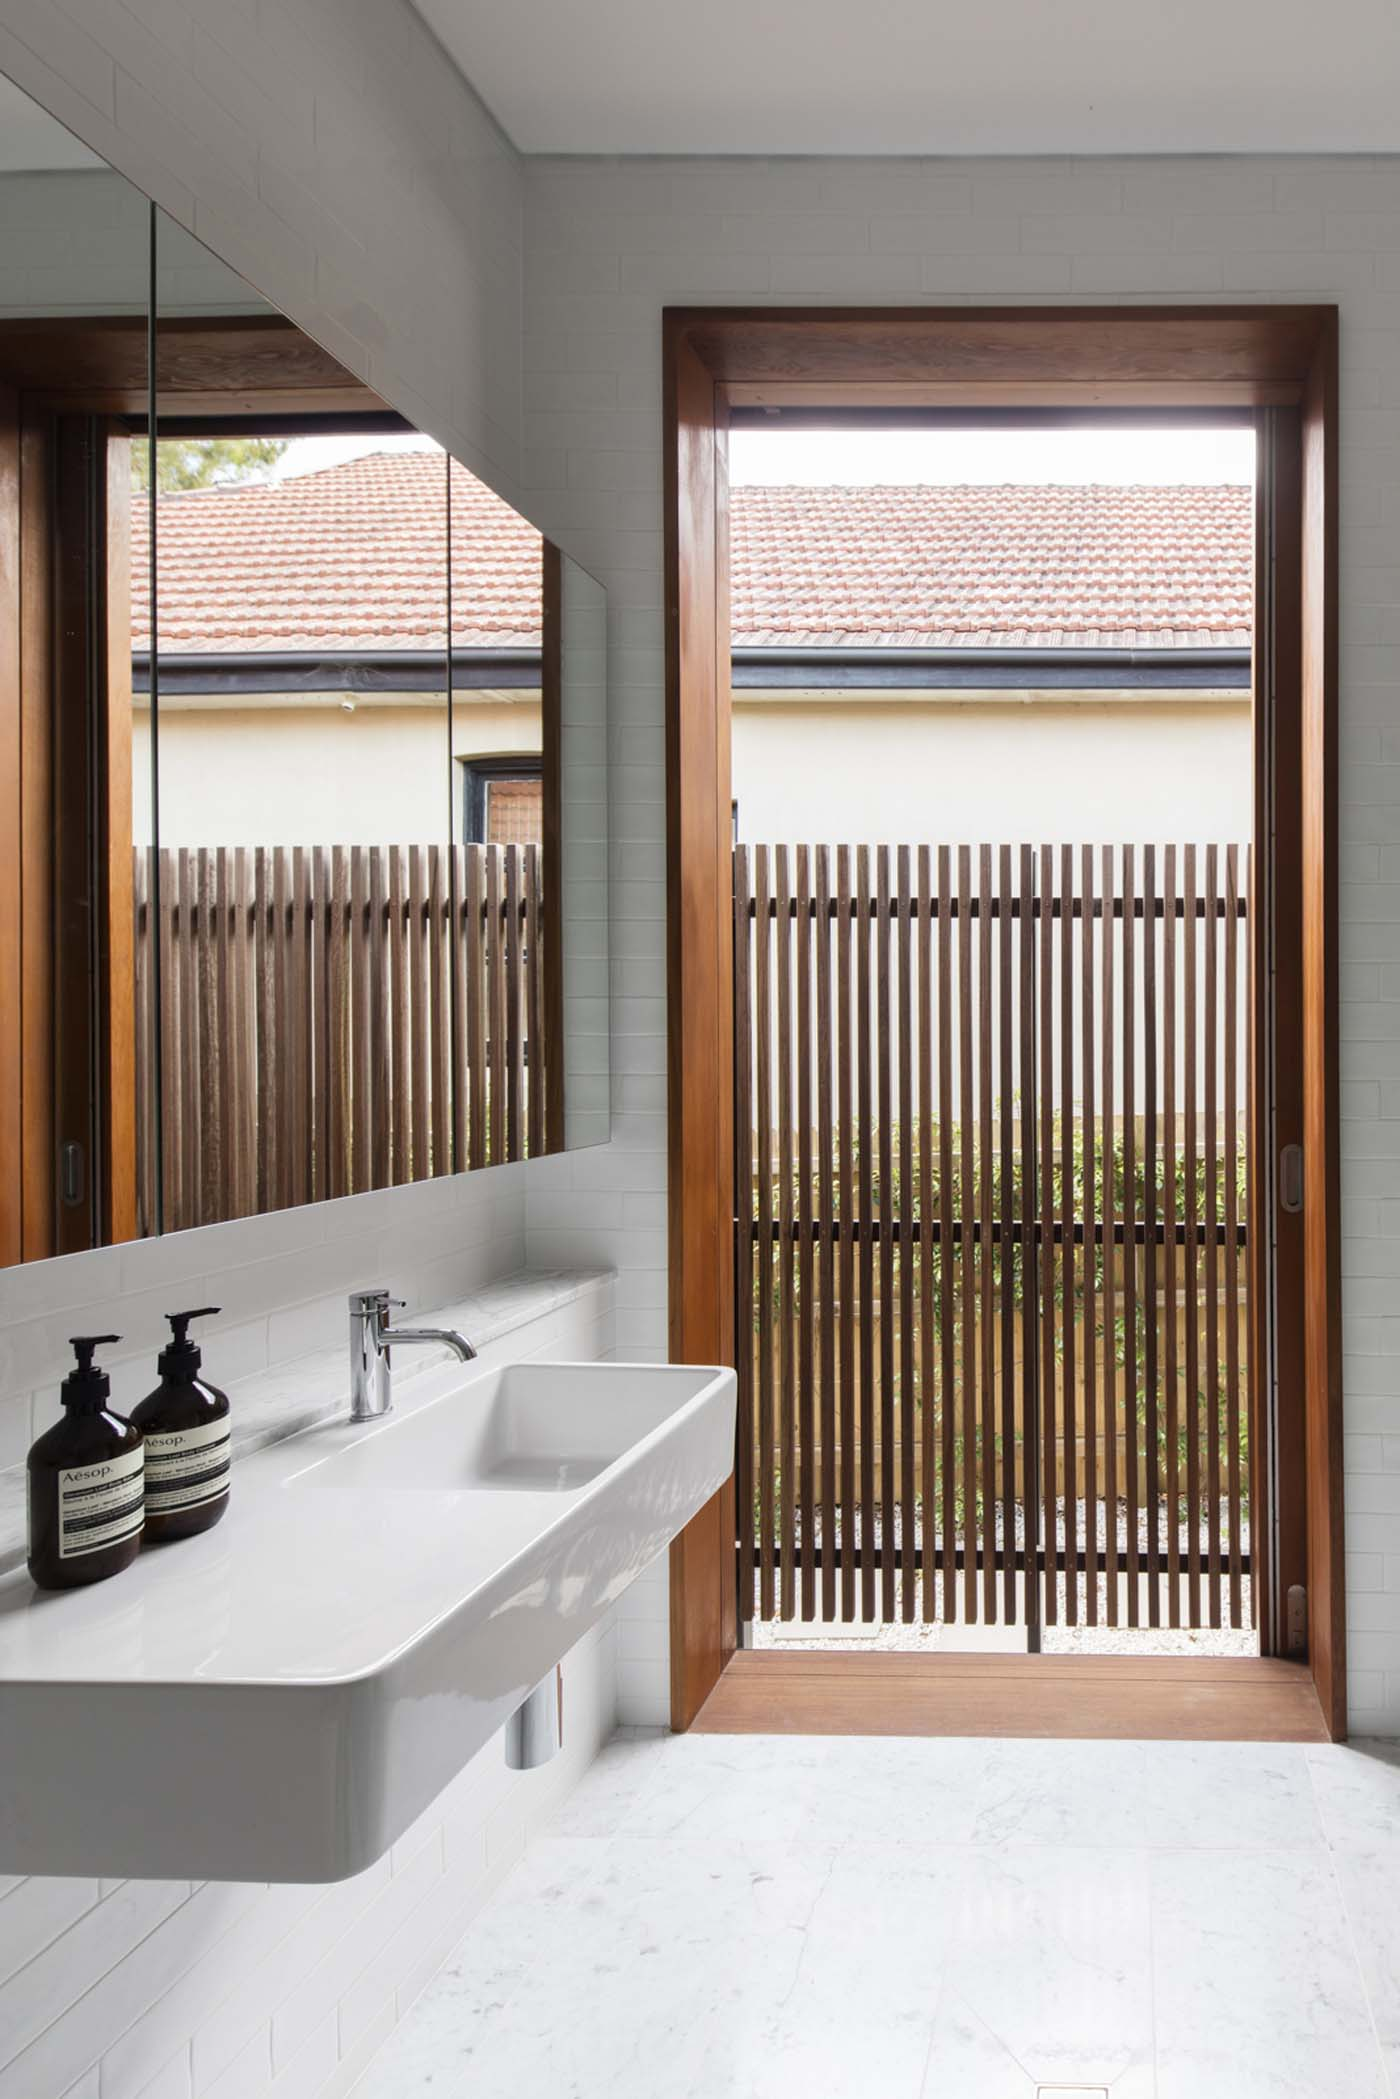 Sung Dobson house by Sam Crawford Architects, Sydney. Bathroom with outdoor access.